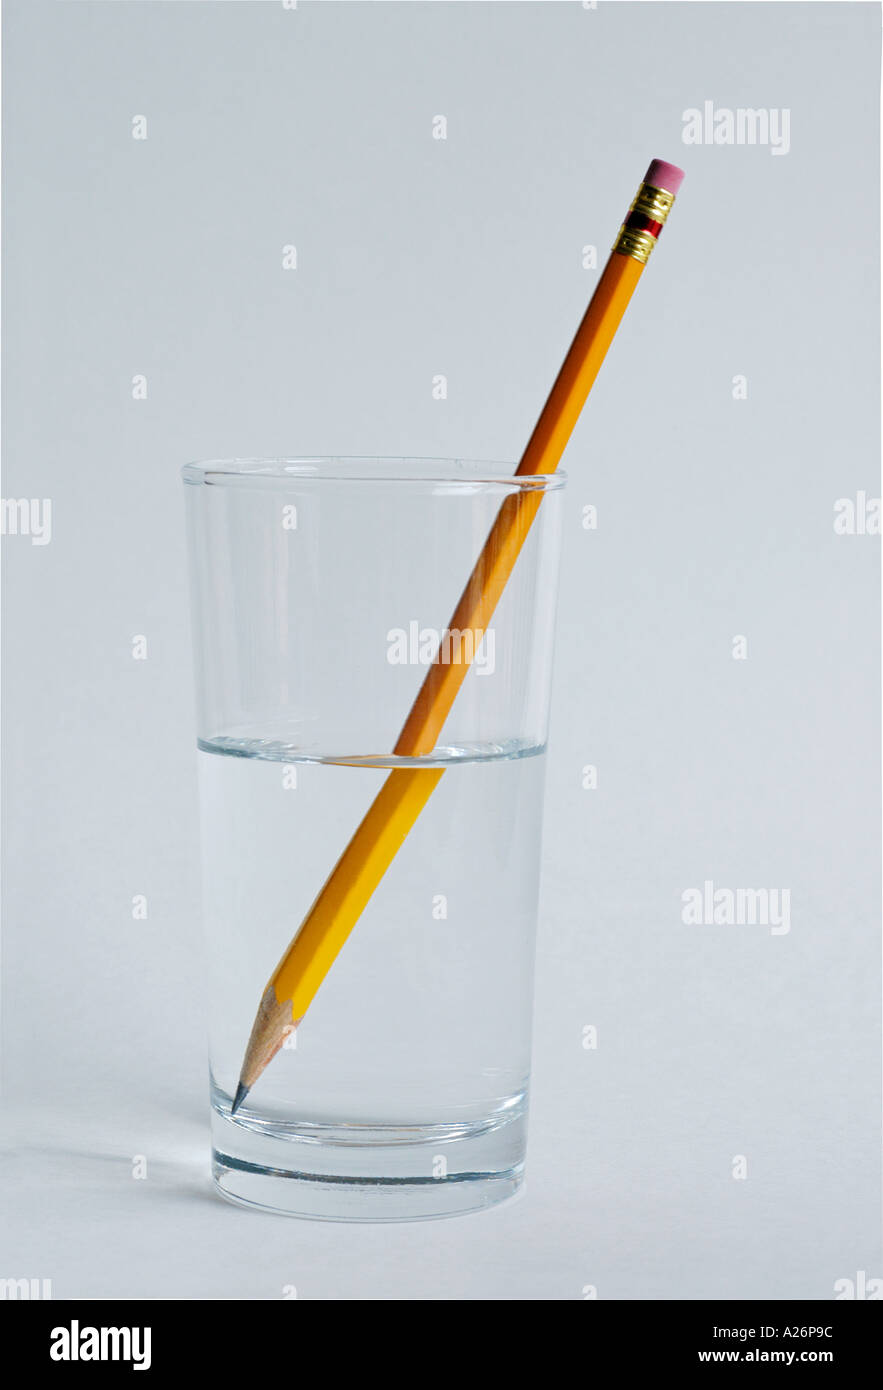 refraction of light in water When light travels from air into water, it slows down, causing it to change direction slightly this change of direction is called refraction when light enters a more dense substance (higher refractive index), it 'bends' more towards the normal line.